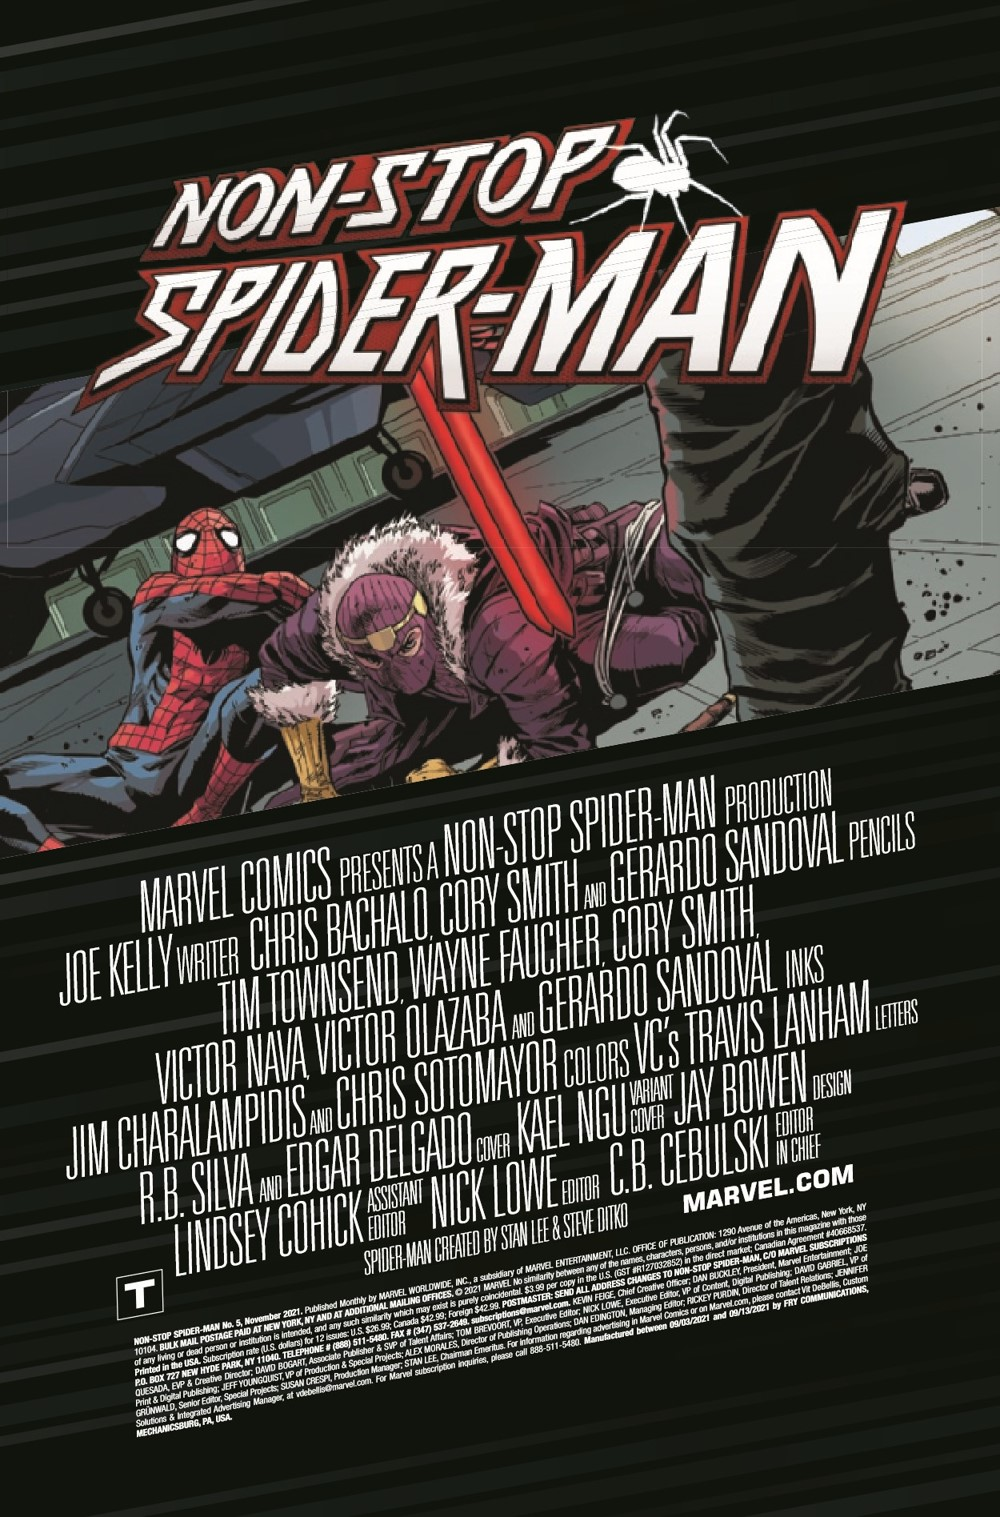 NONSTOPSM2021005_Preview-2 ComicList Previews: NON-STOP SPIDER-MAN #5